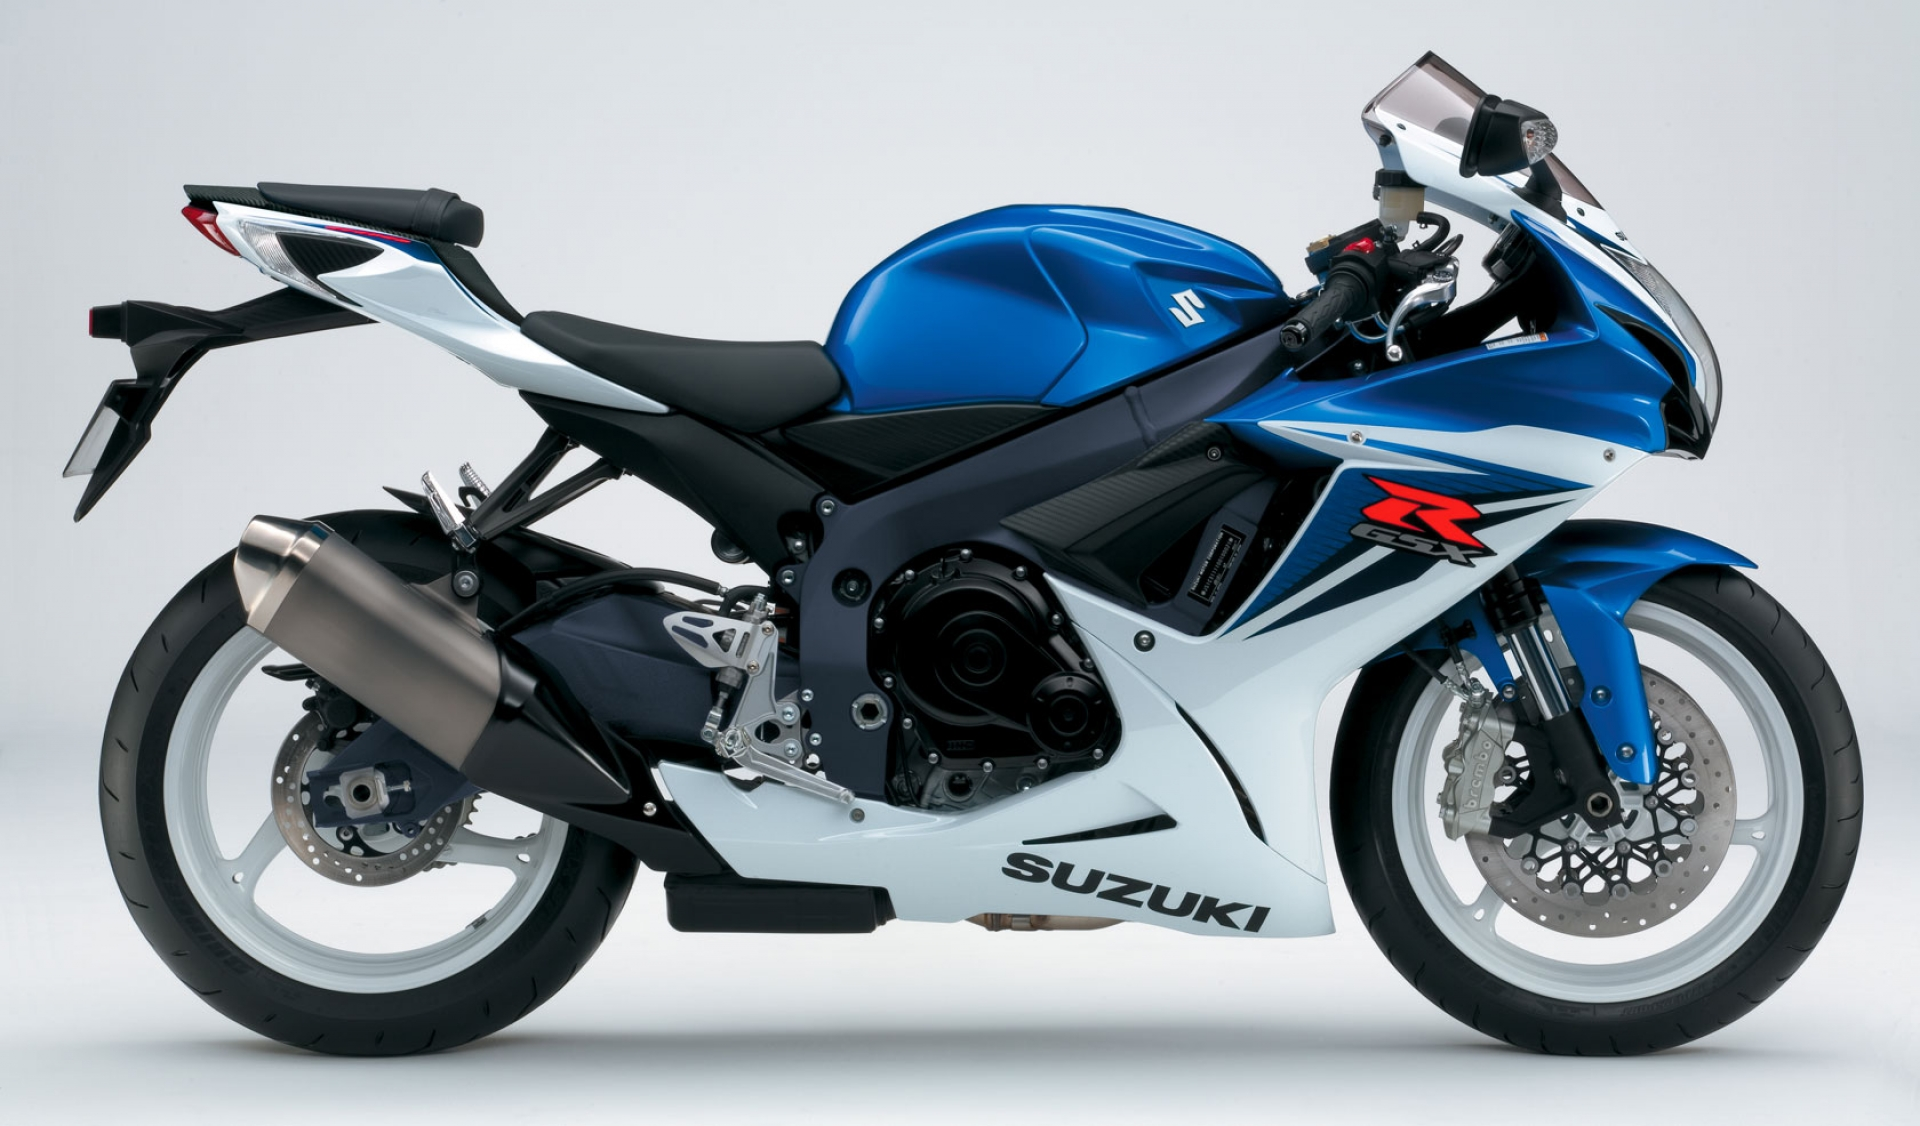 suzuki gsx r 600 fiche technique avis et prix la. Black Bedroom Furniture Sets. Home Design Ideas